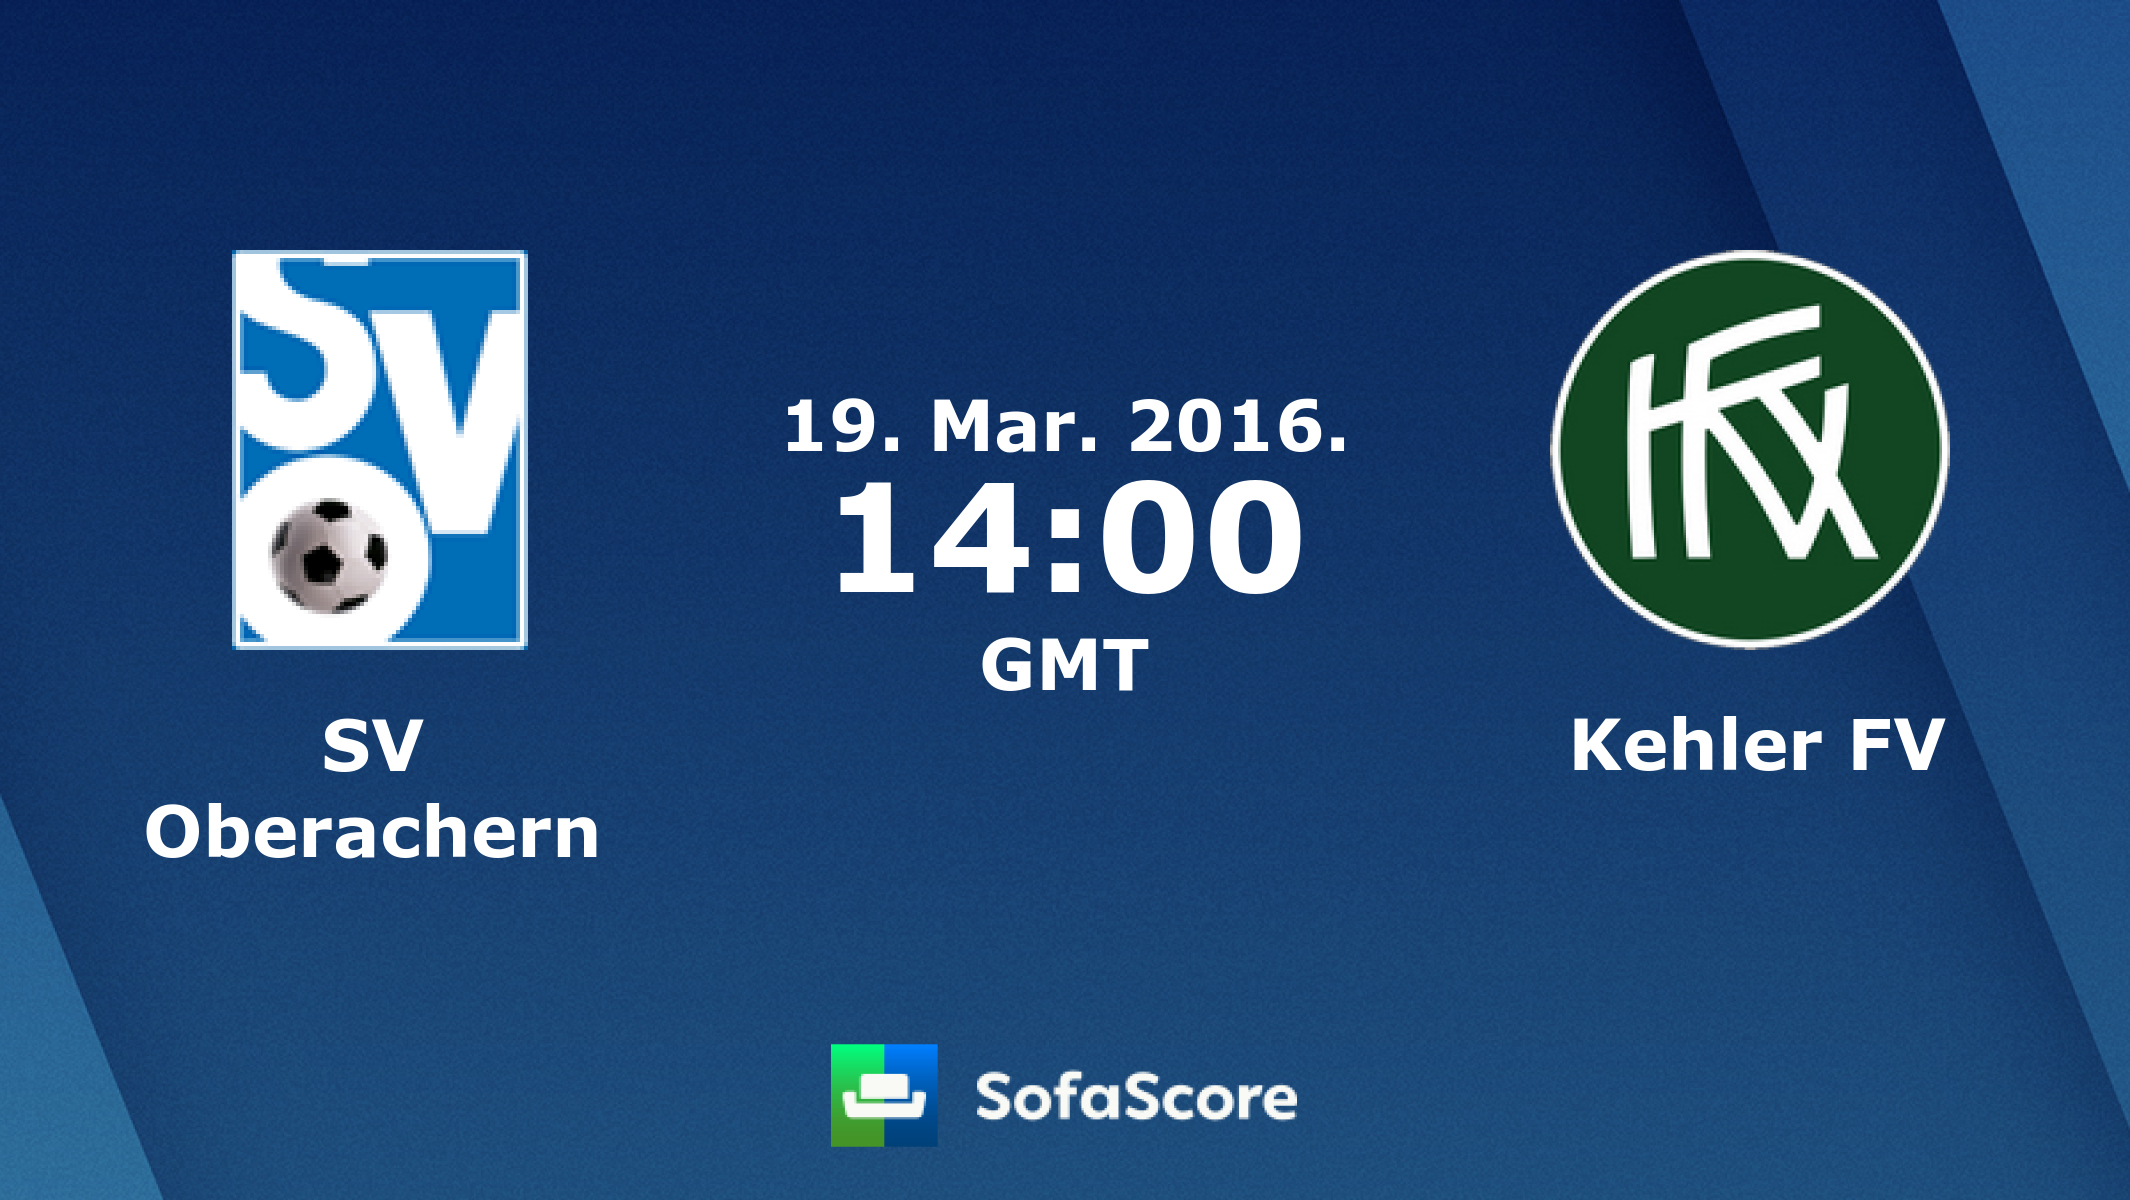 sofascore table tennis natuzzi leather sofa complaints sv oberachern kehler fv résultats en direct